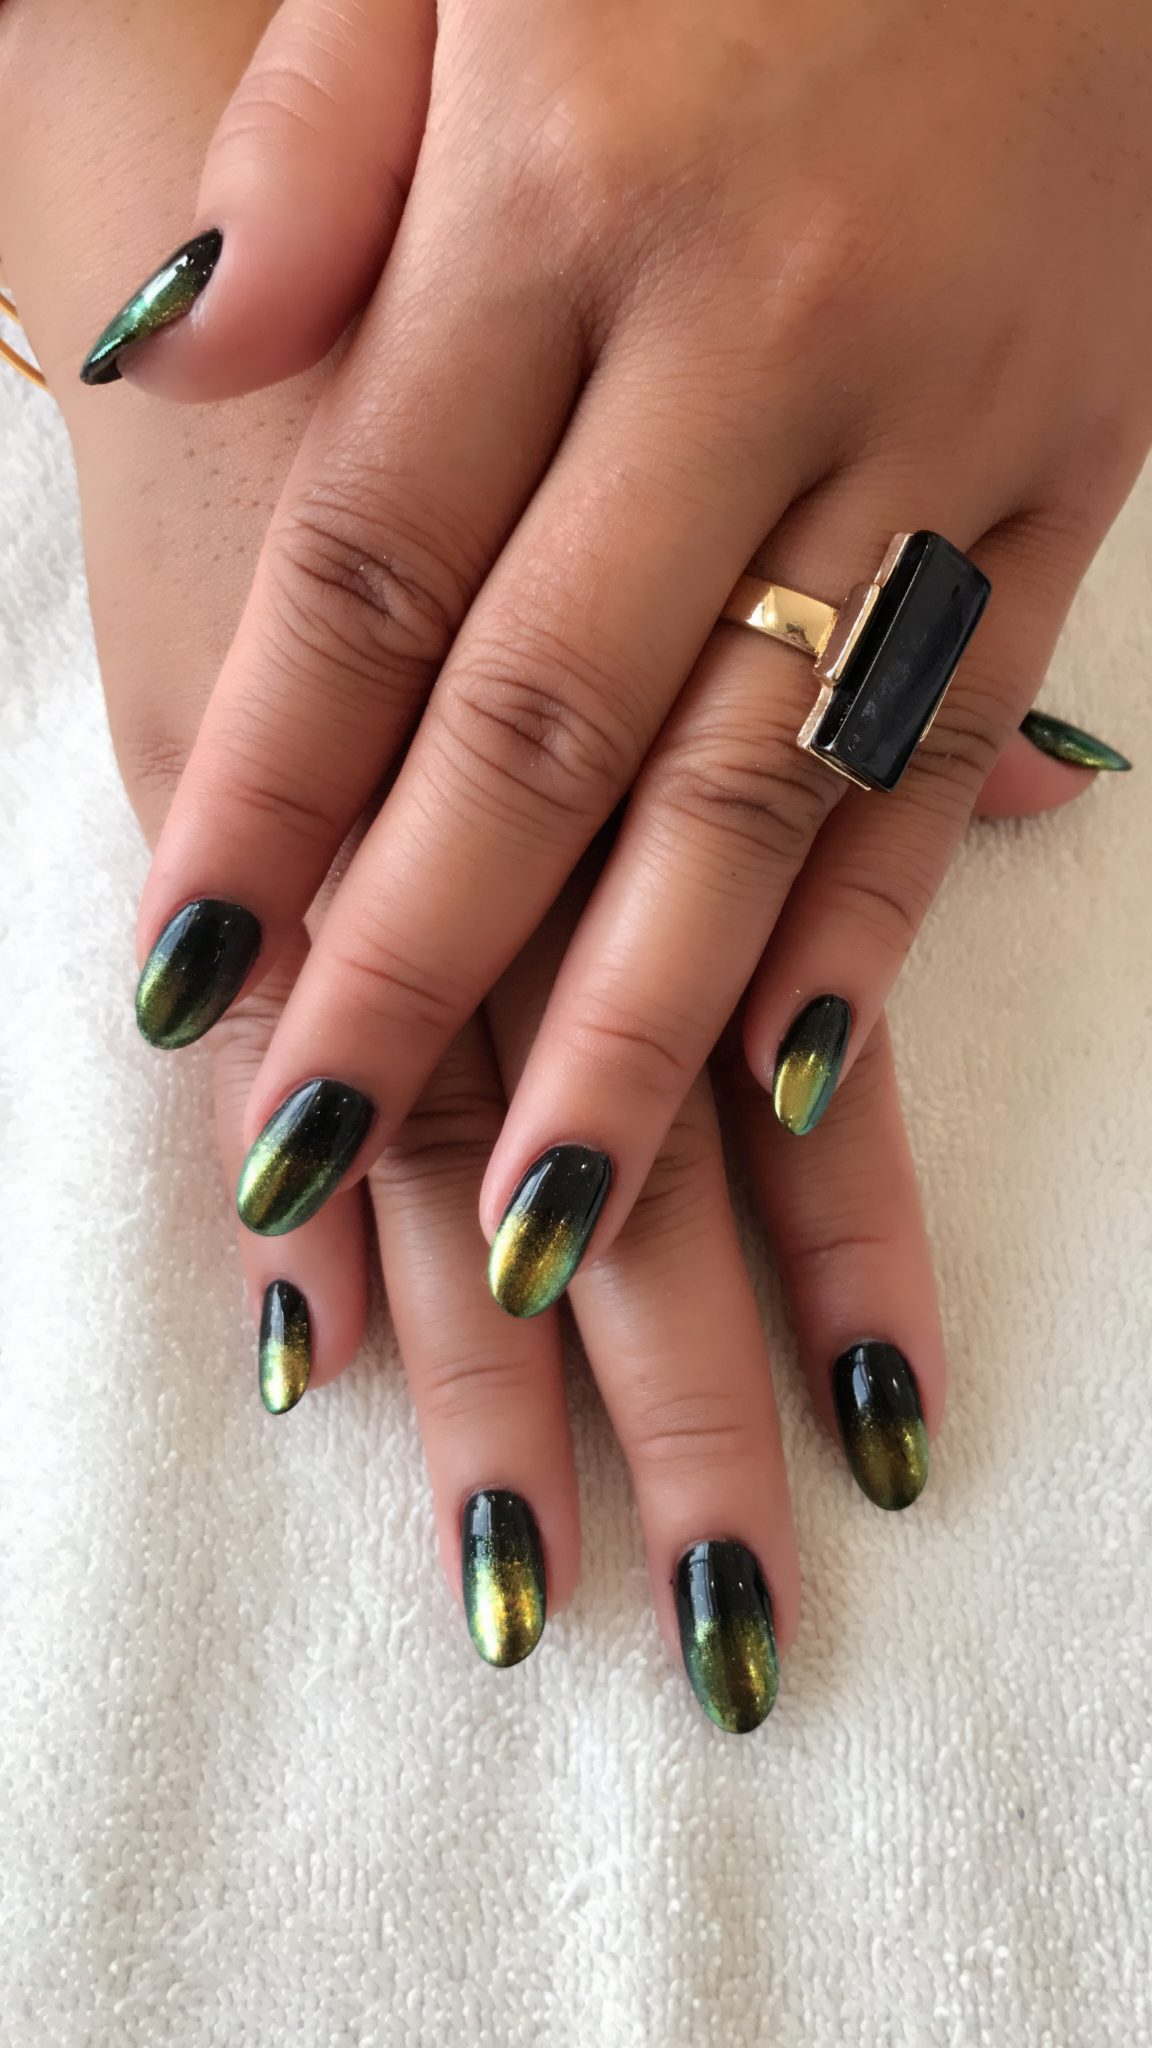 nail-design-treat-your-nails-005 - Treat Your Nails